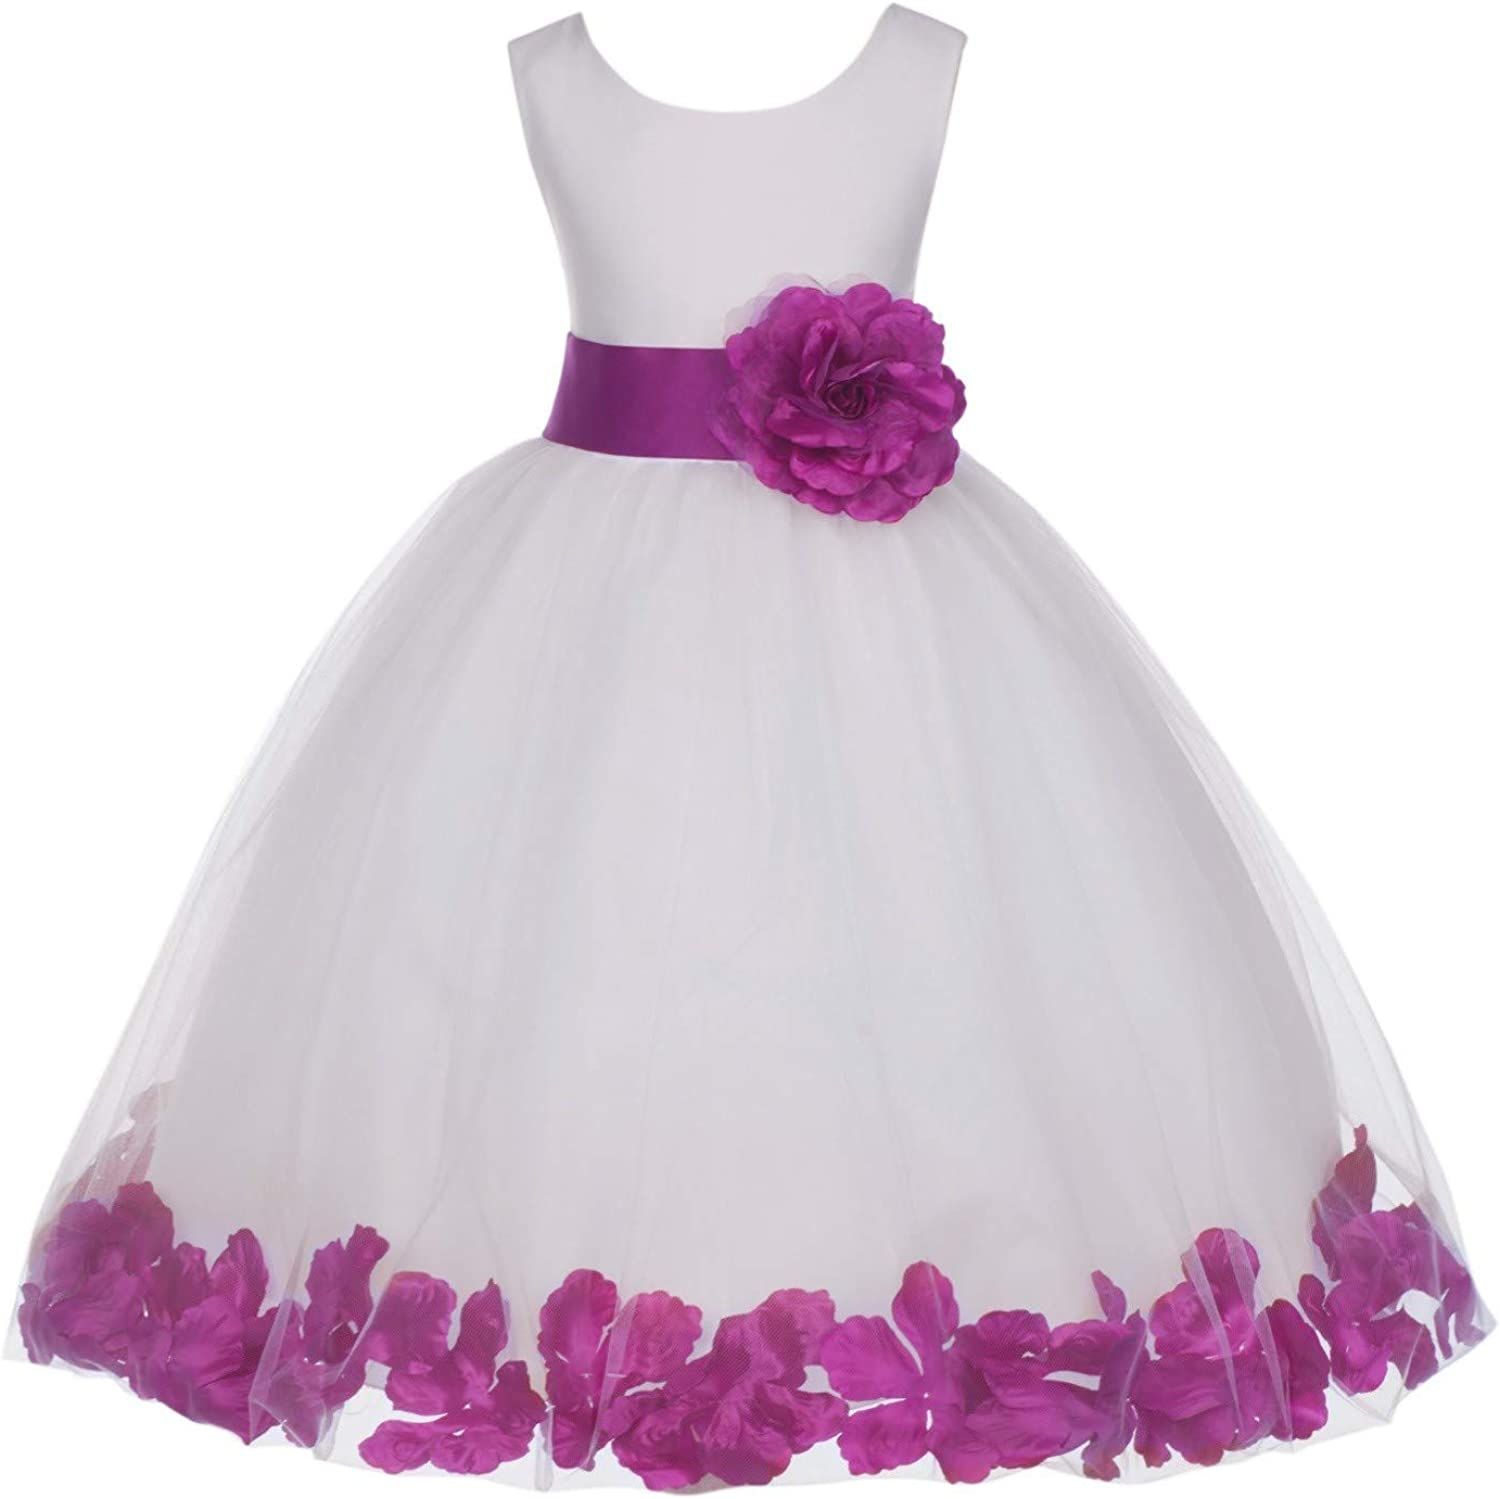 Ivory Tulle Rose Floral Petals Toddler Flower Girl Dresses Bridal Gown 302T